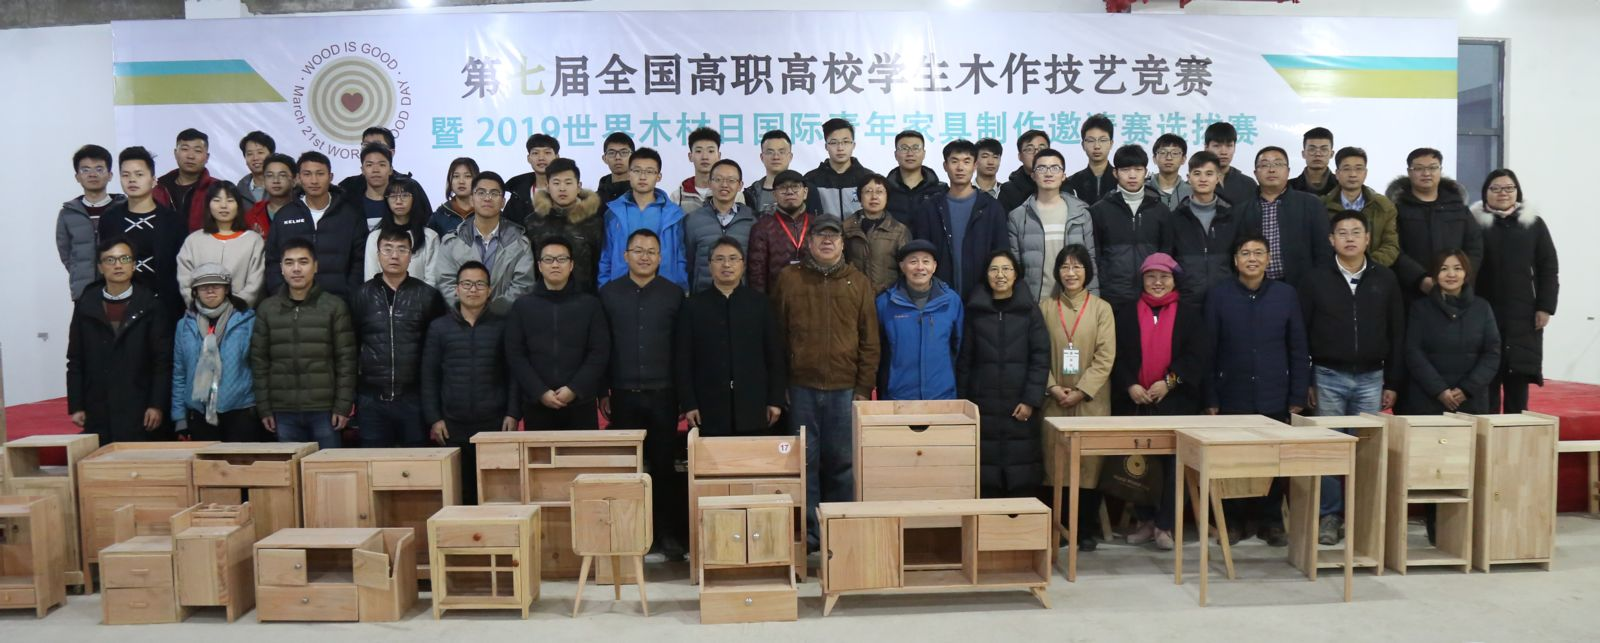 7th National Vocational & College Student Carpentry Skills Competition